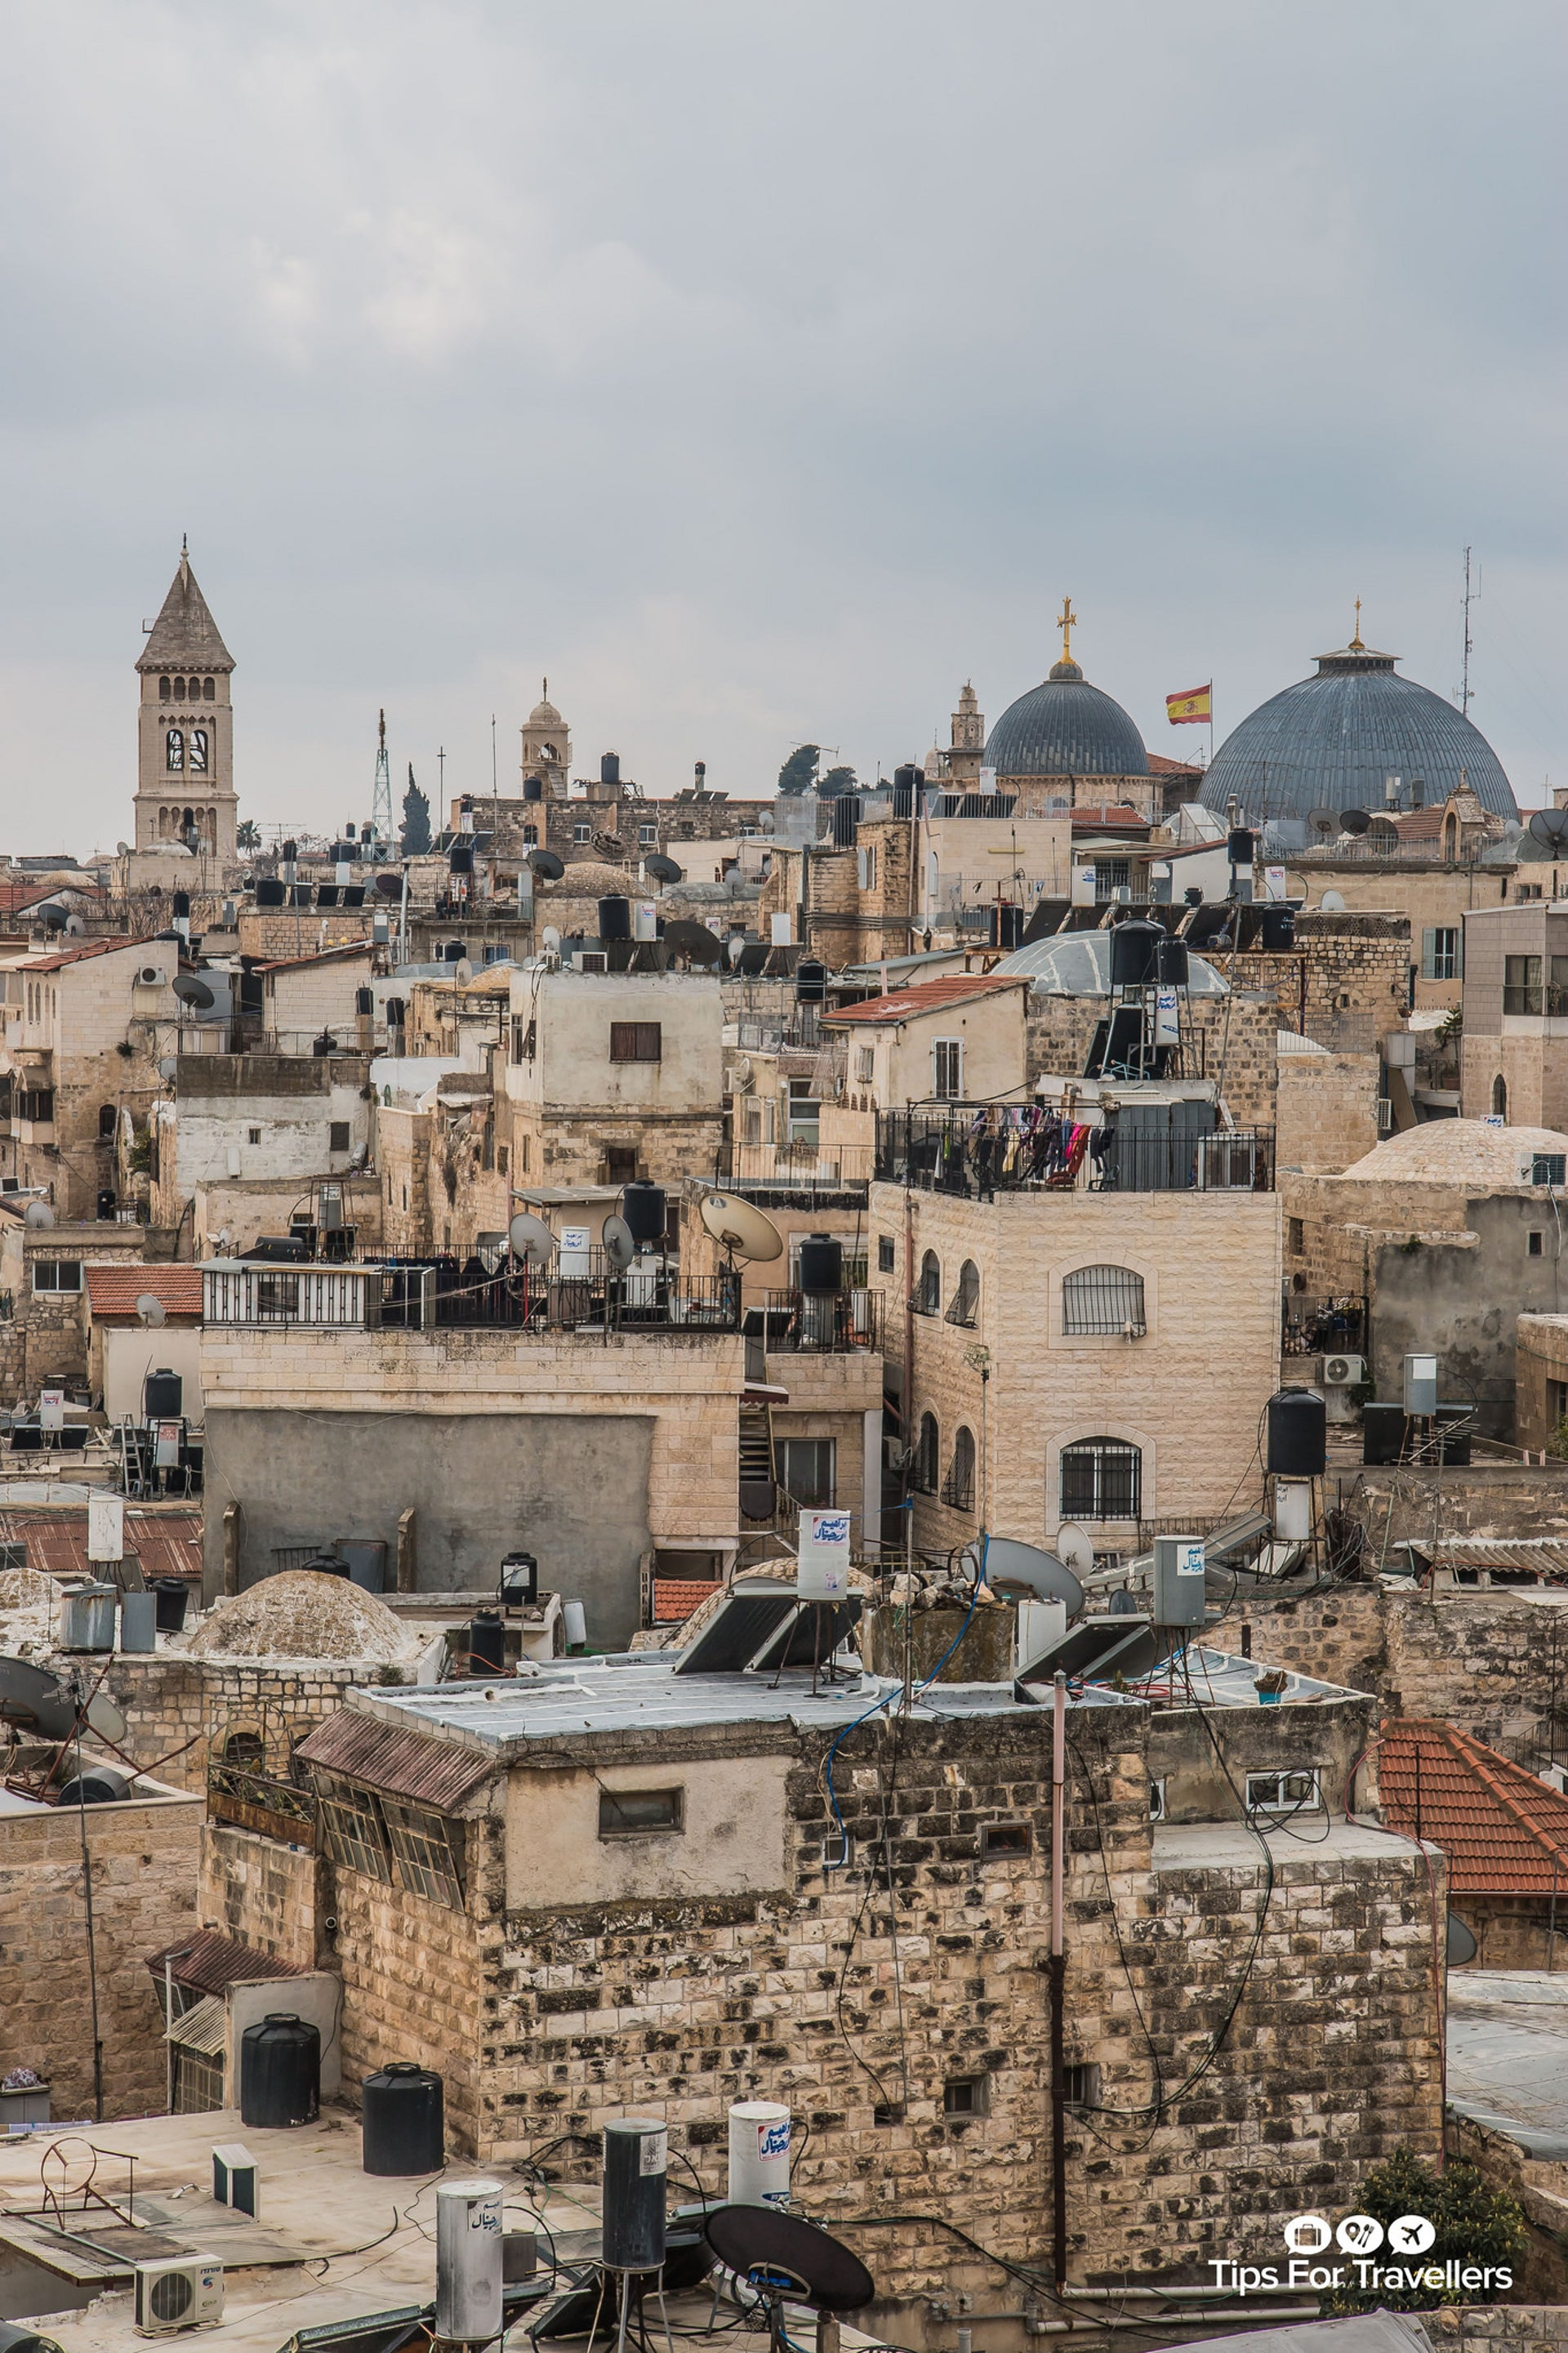 Jerusalem's old city. The beauty of its four quarters contrasts with the tensions.